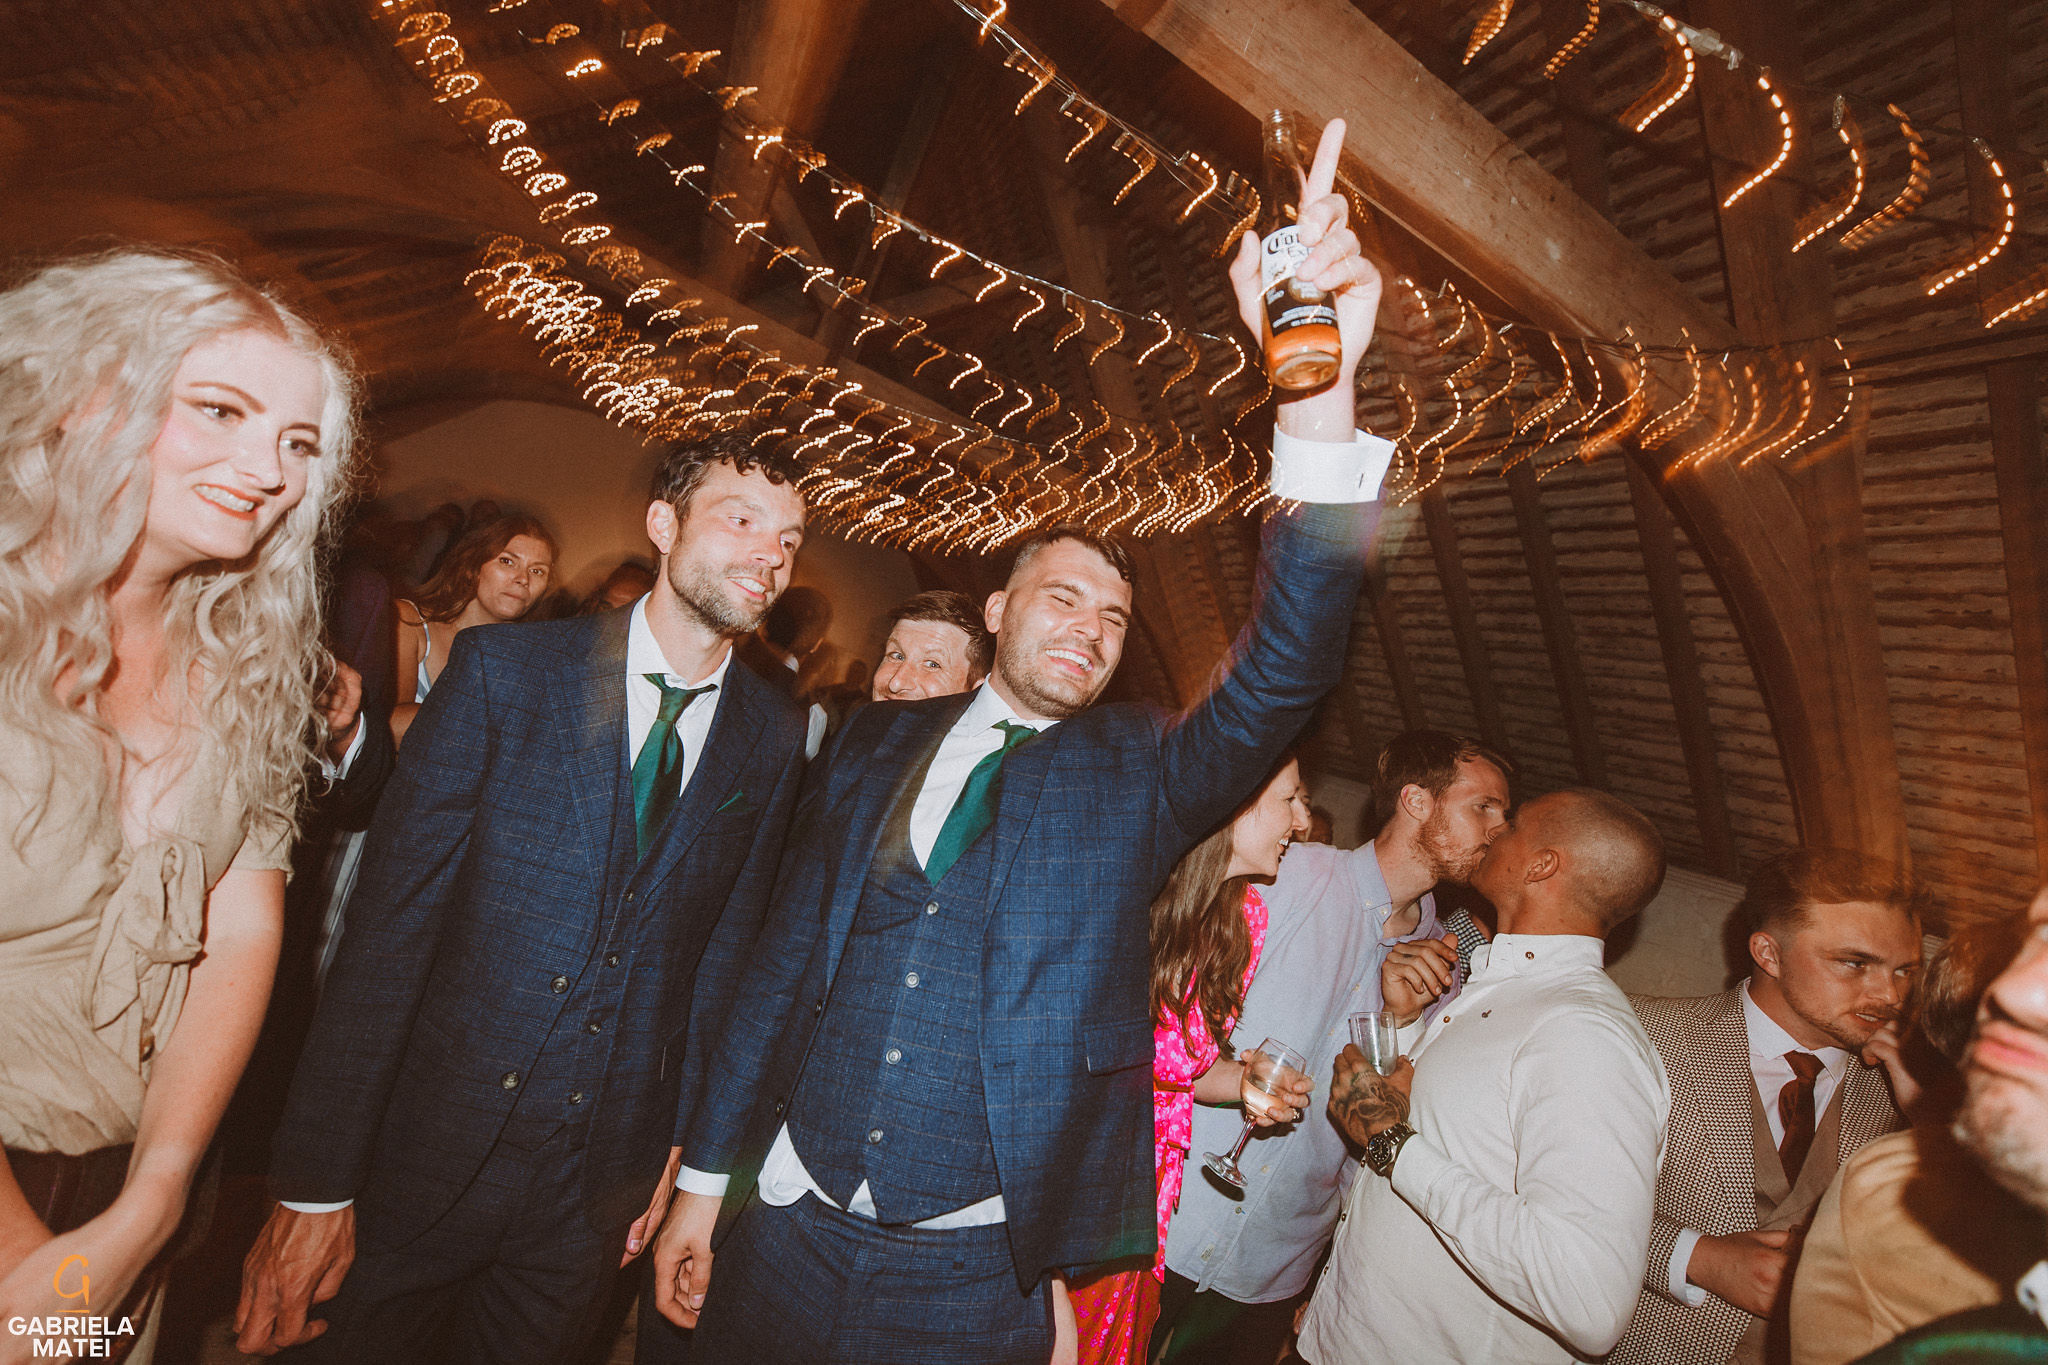 wedding guests dancing and singing at South Stoke Barn wedding venue in Arundel by gabriela matei sussex photographer